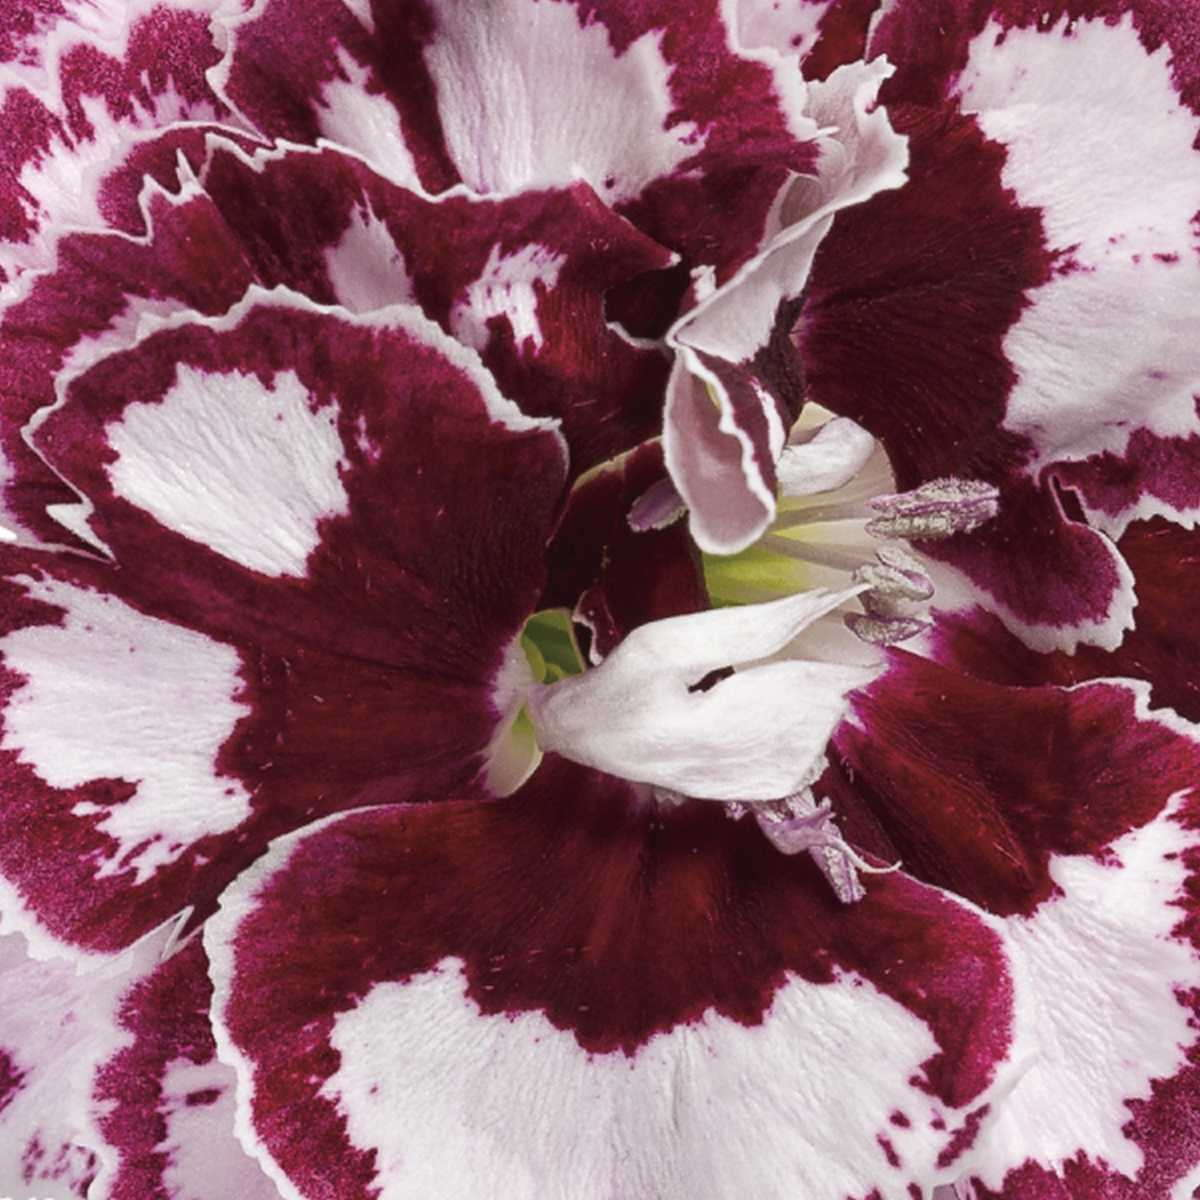 Dianthus FRUIT PUNCH® 'Coconut Punch' Proven Winners